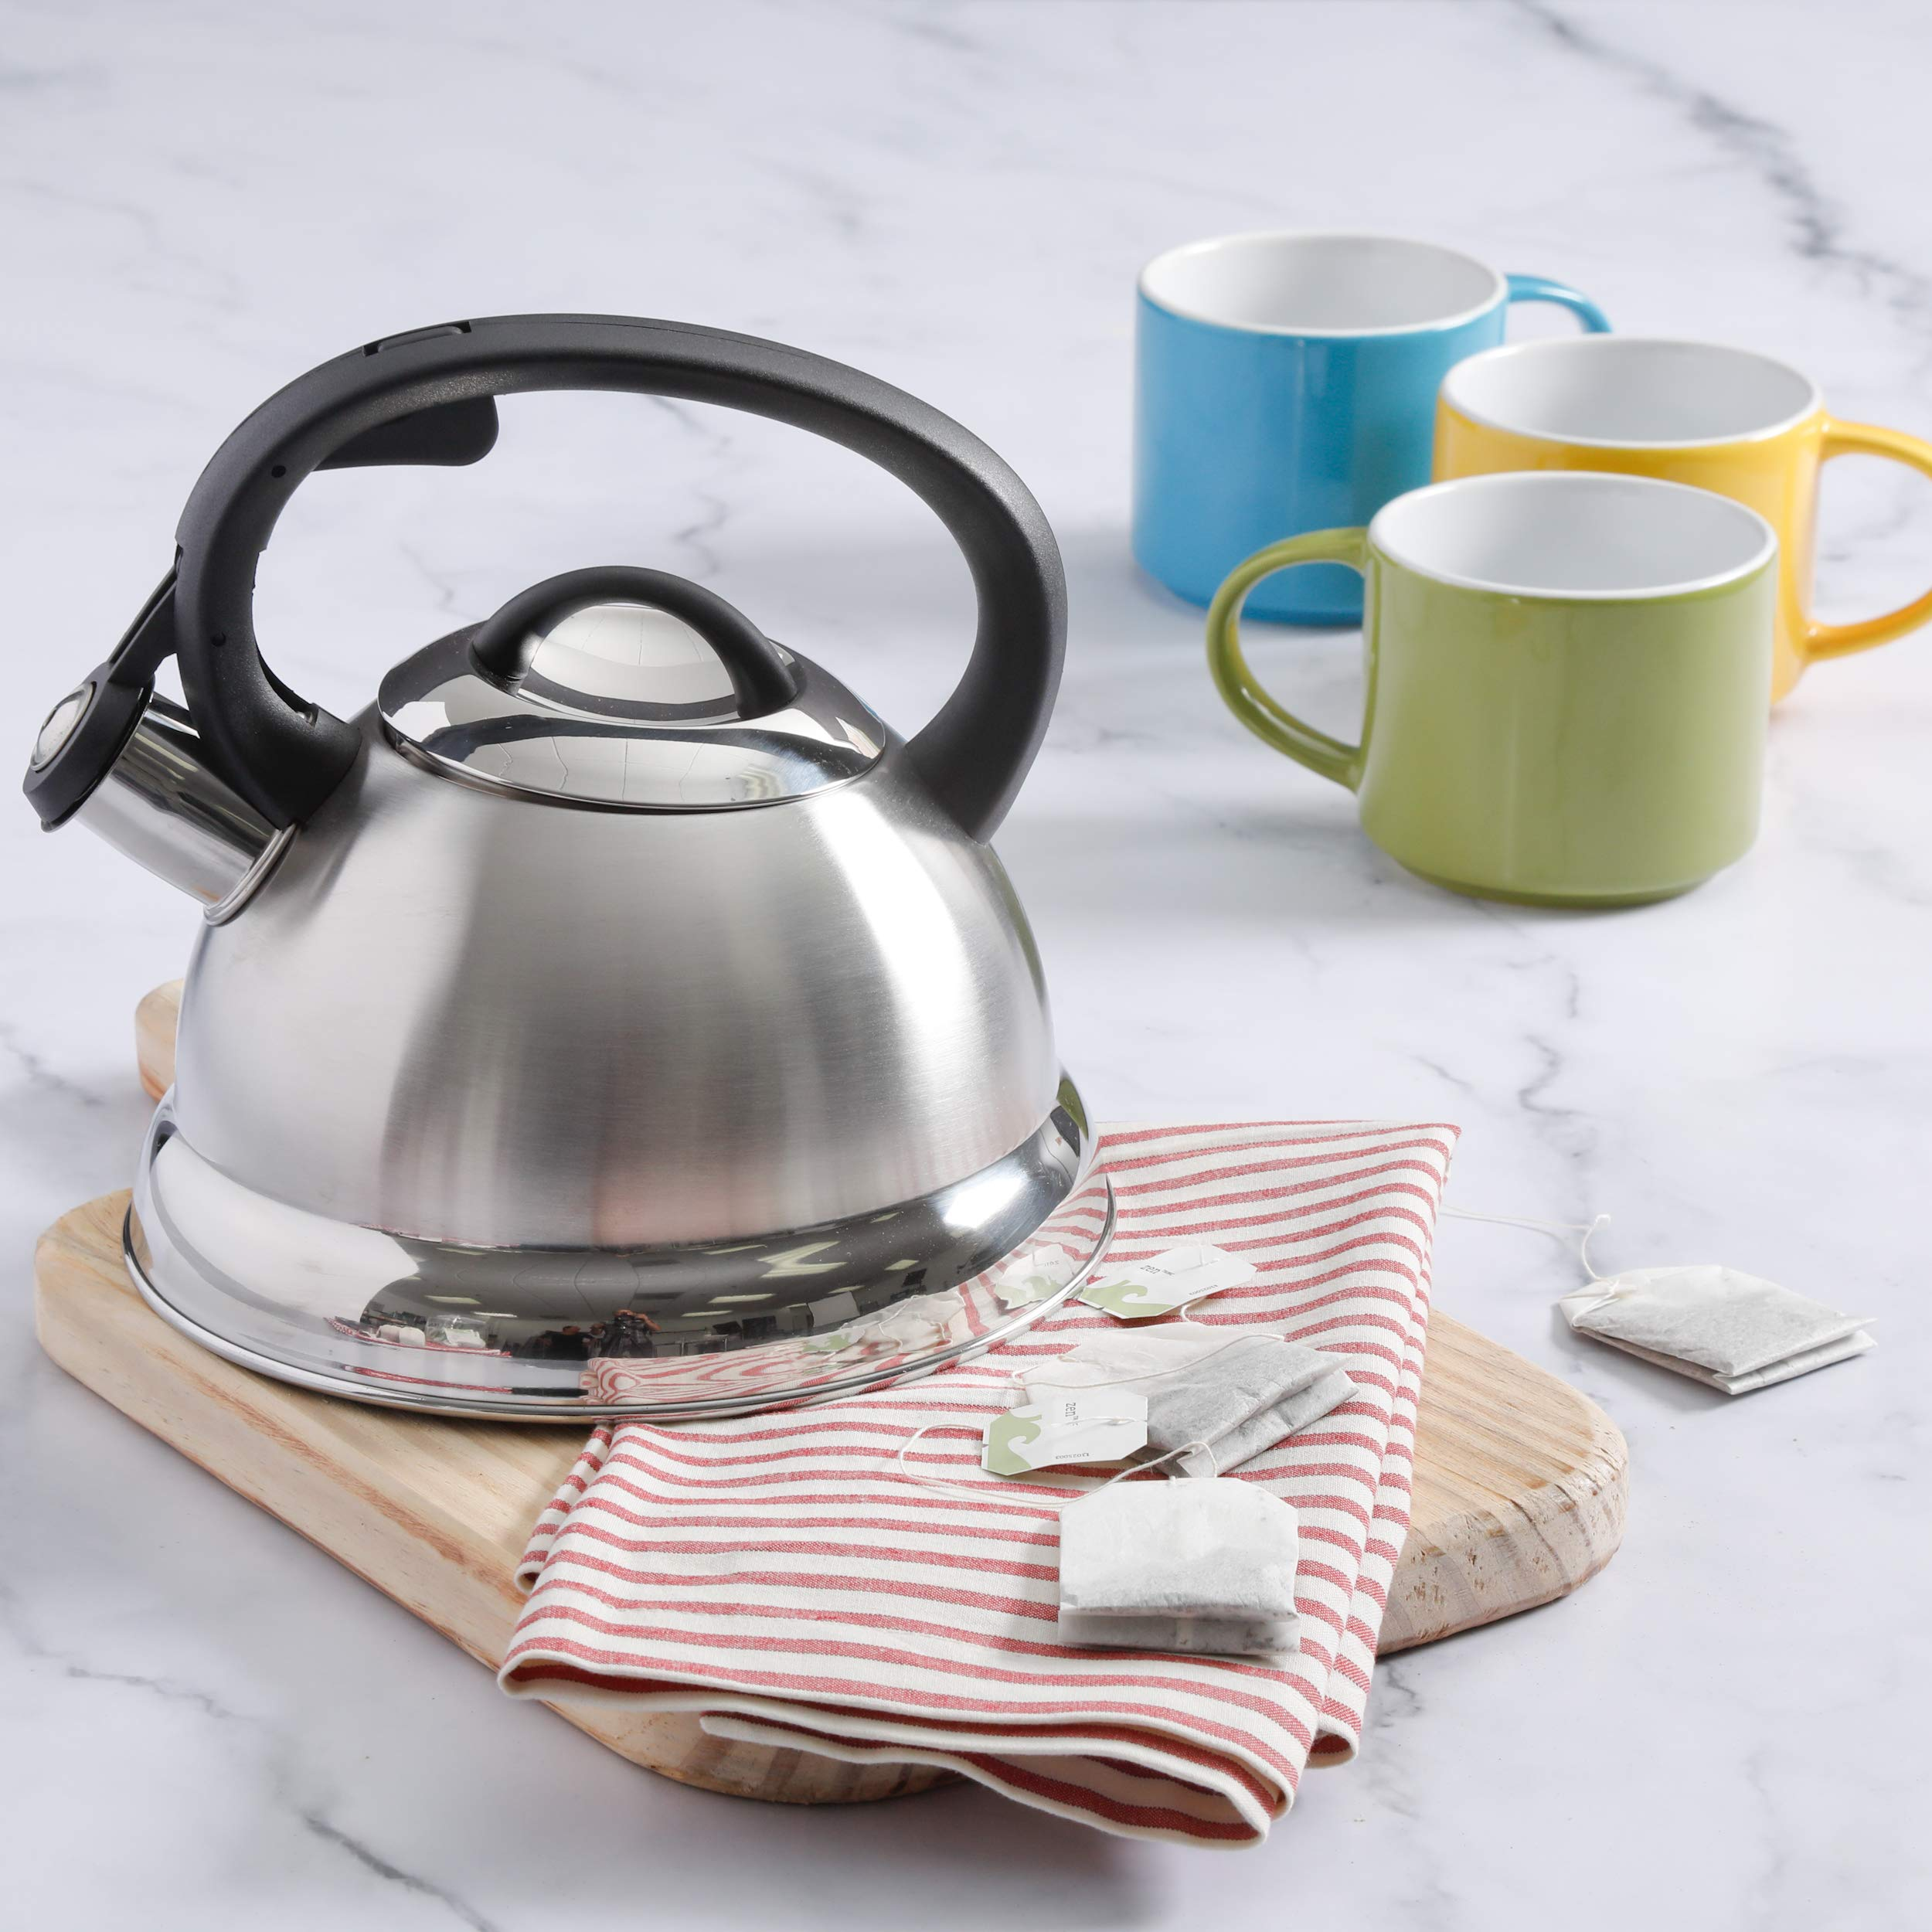 Mr. Coffee 91407.02 Flintshire Stainless Steel Whistling Tea Kettle, 1.75-Quart, Silver by Mr. Coffee (Image #2)